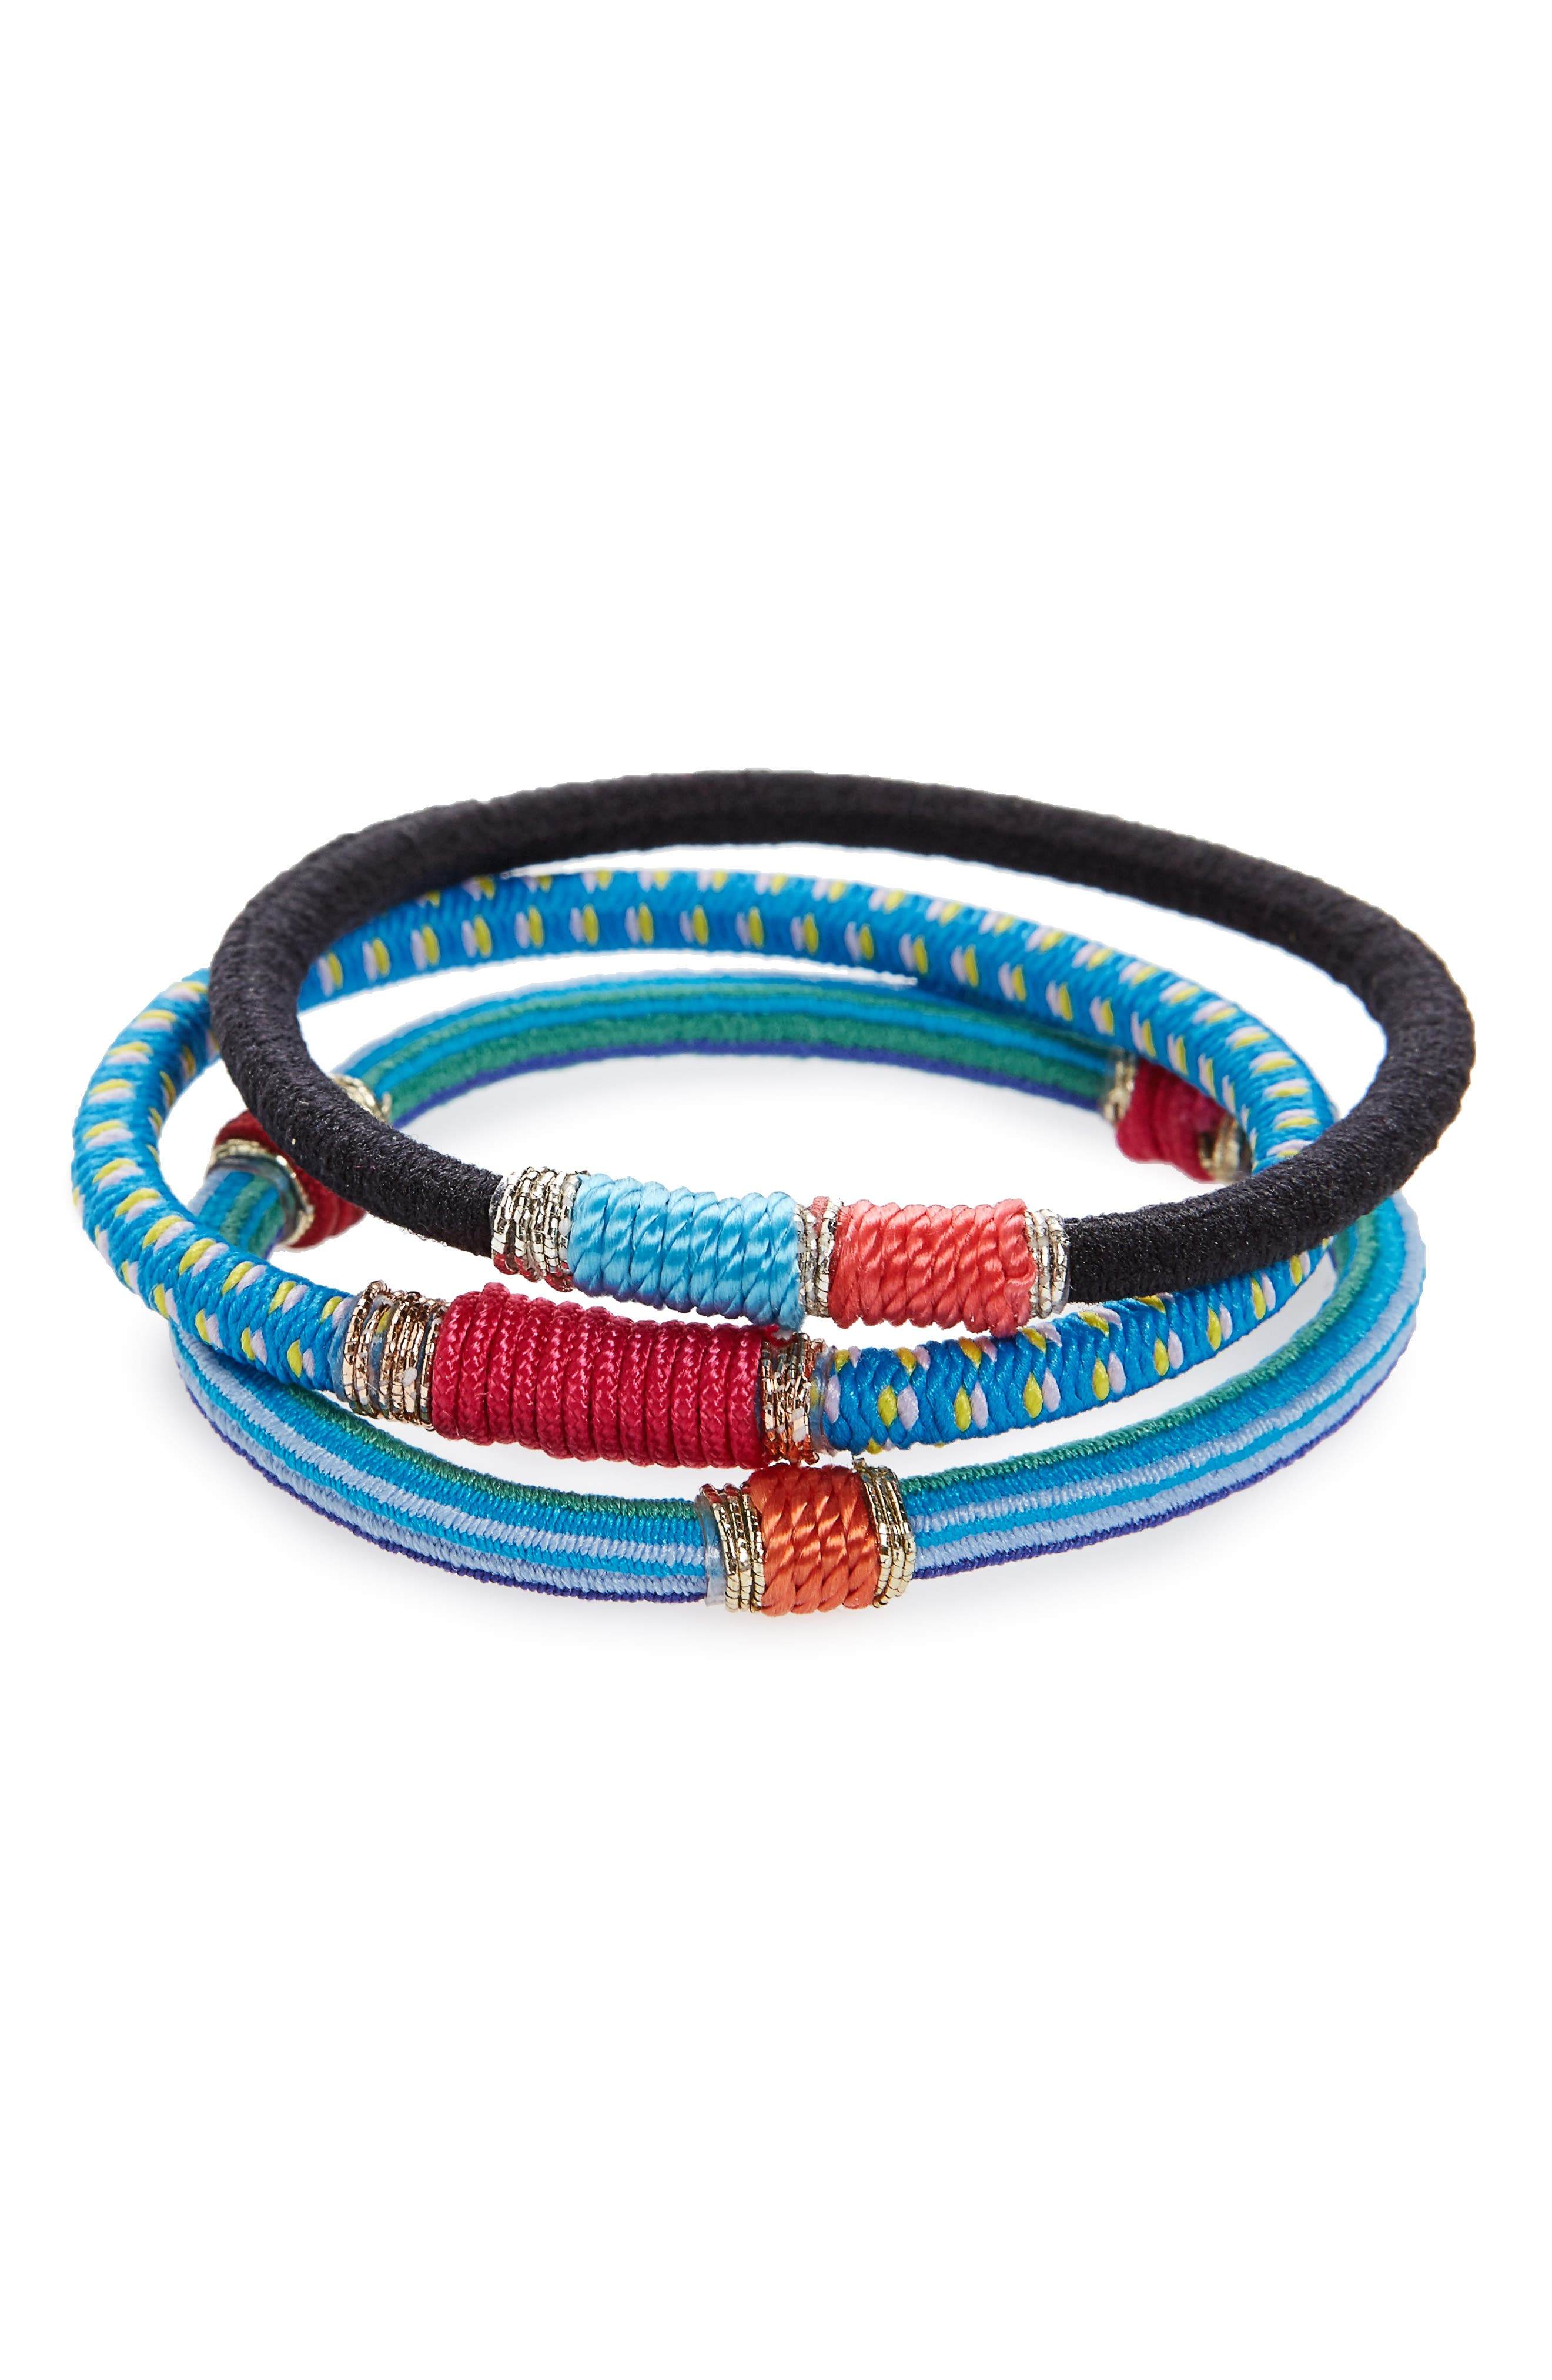 Moroccan Set of 3 Ponytail Holders,                             Main thumbnail 1, color,                             460